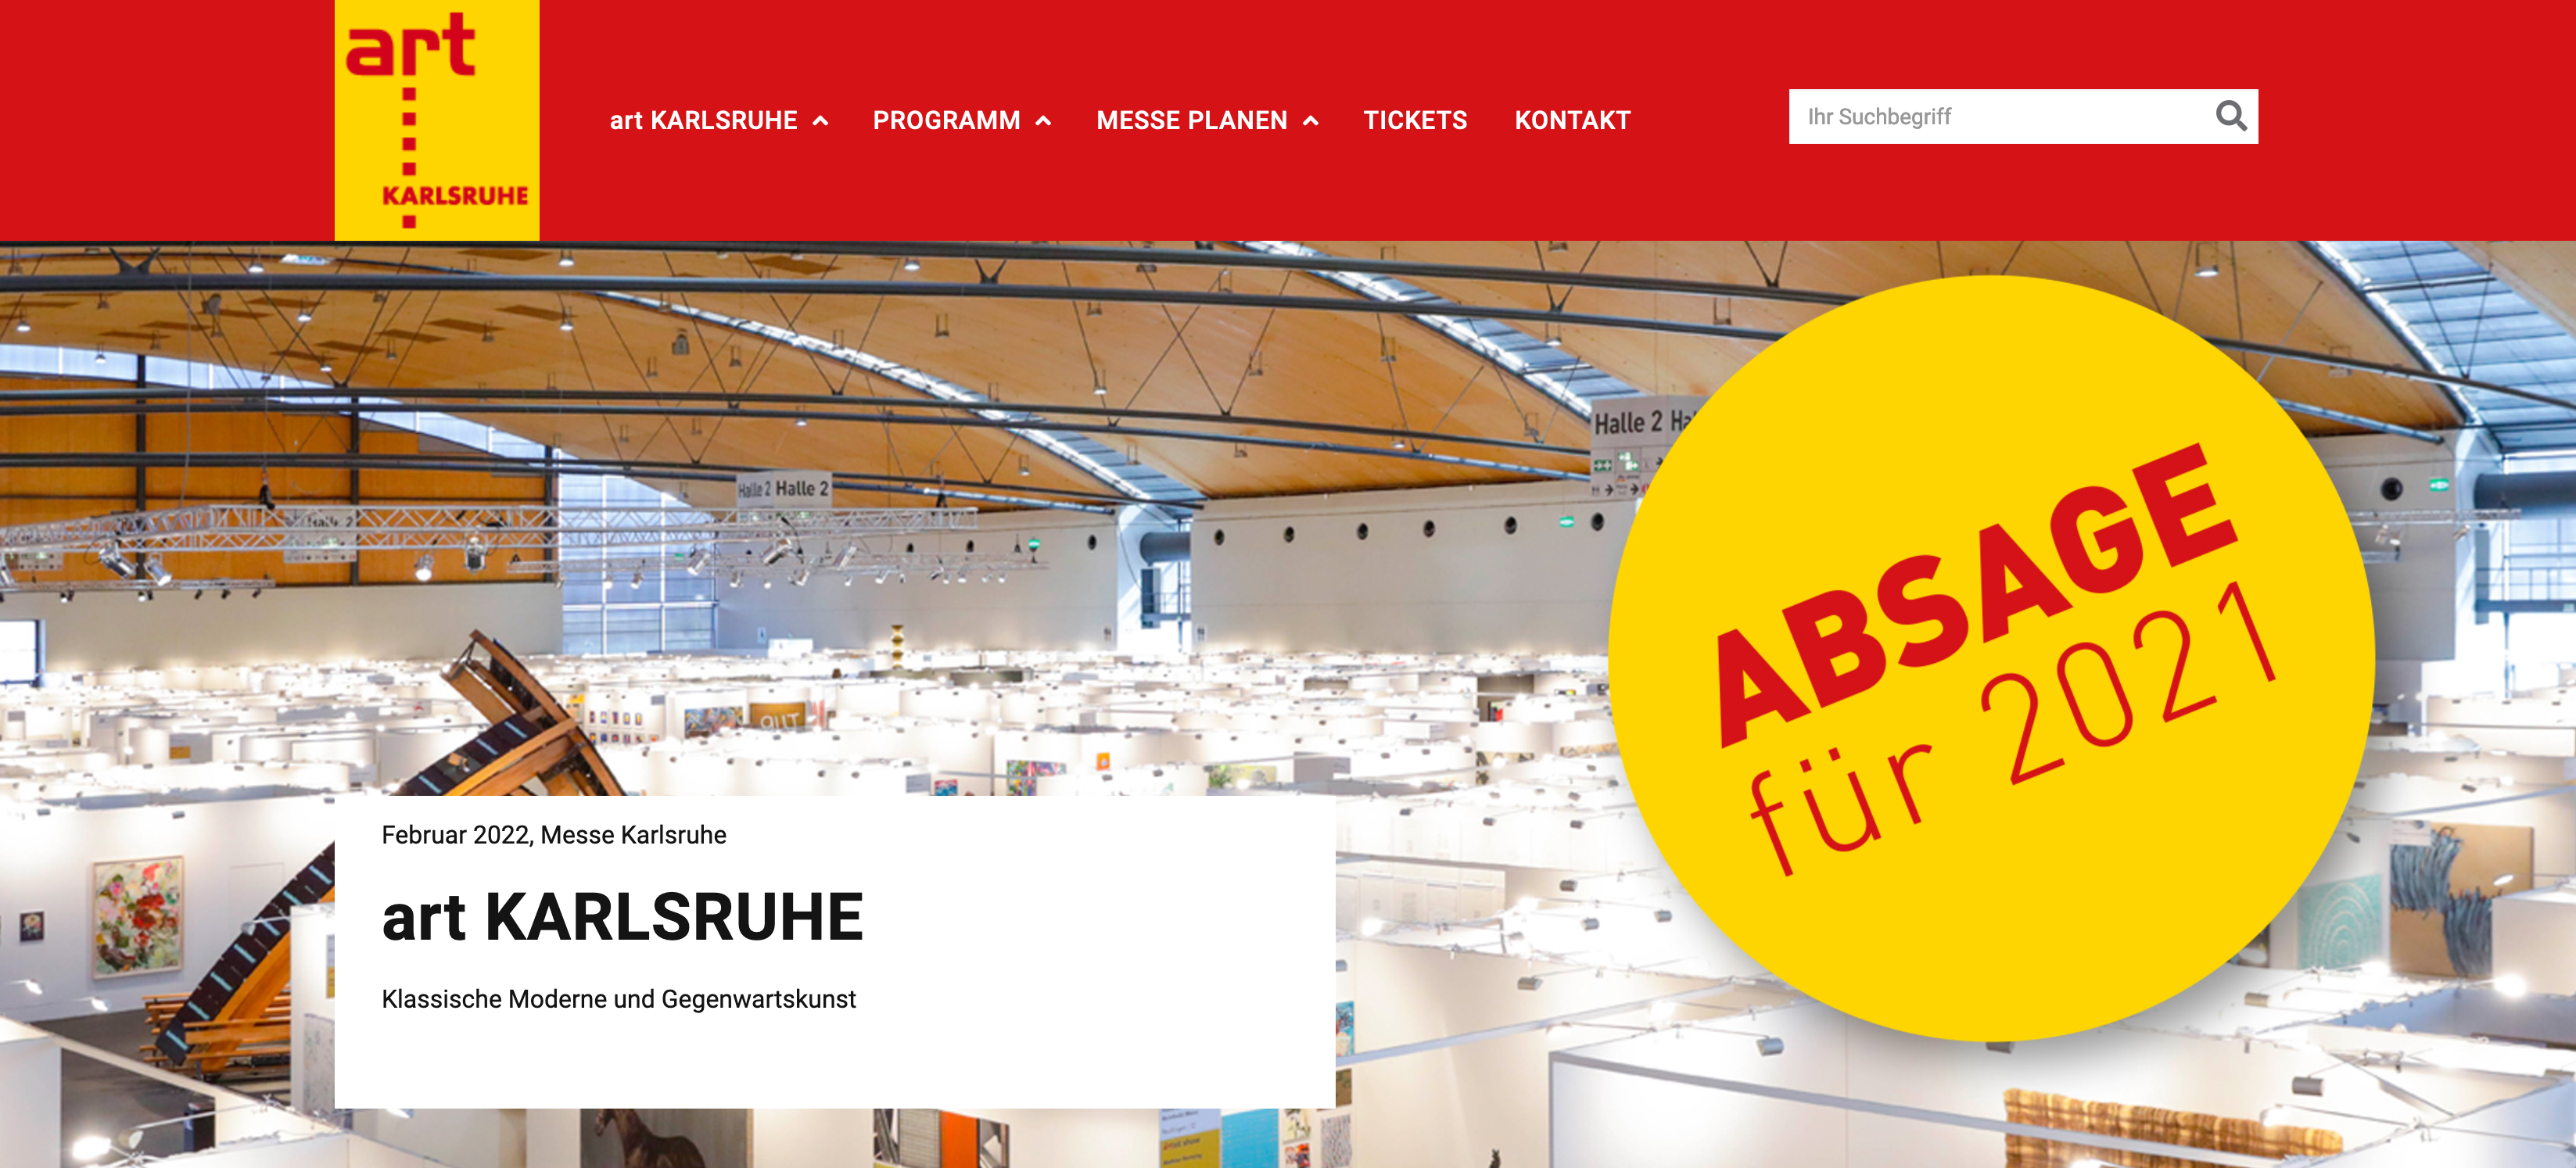 Screenshot von der Website ART Karlsruhe